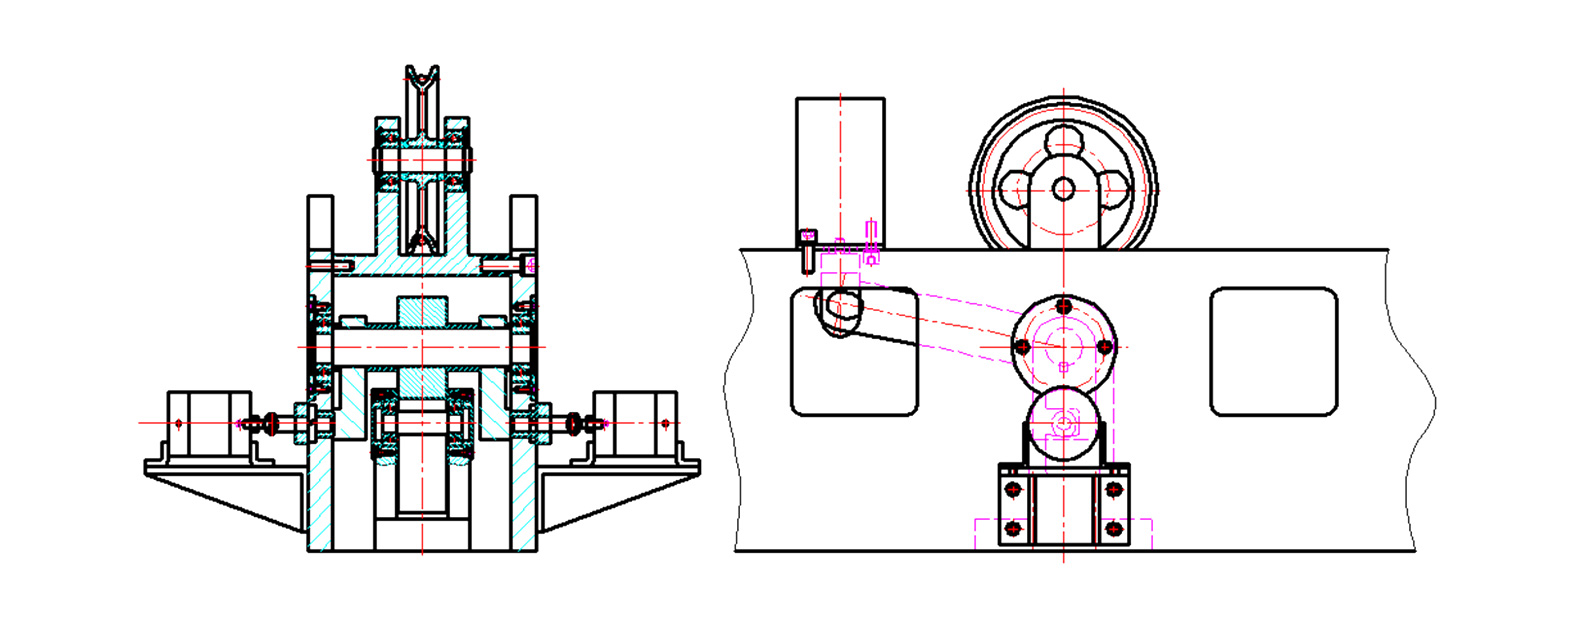 Lock hammer and release drop hammer device drawing design